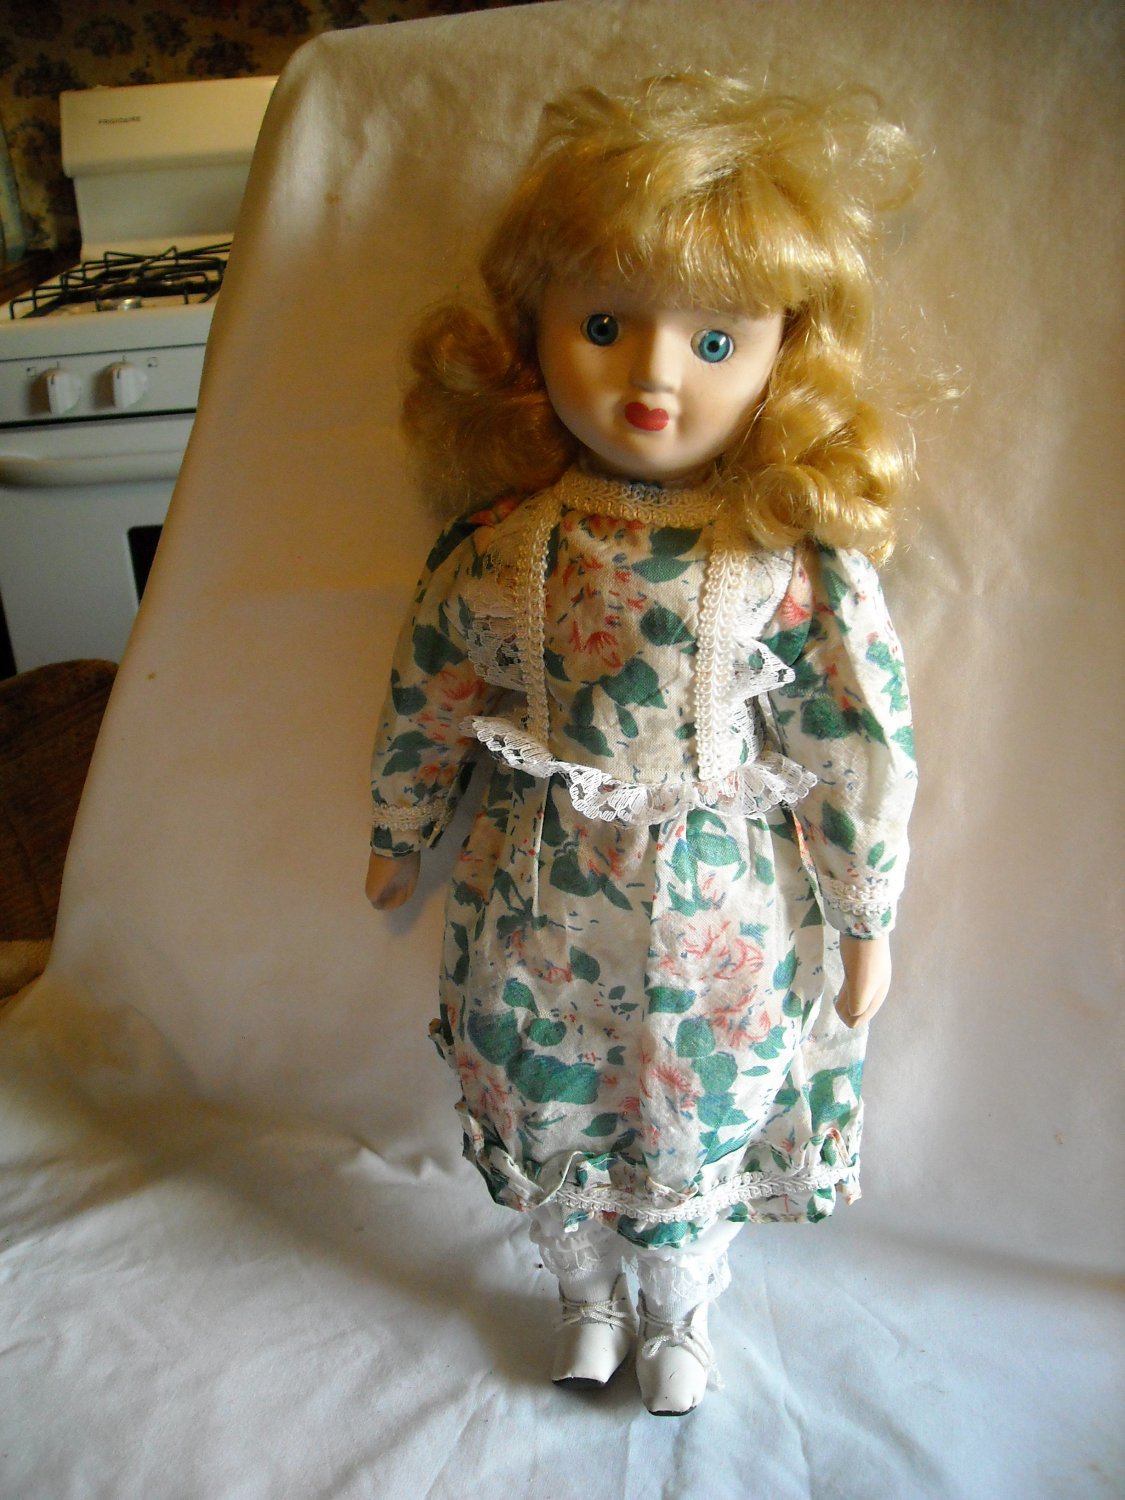 "Porcelain Doll White and Green with Pink Flower Dress 15"" Tall"